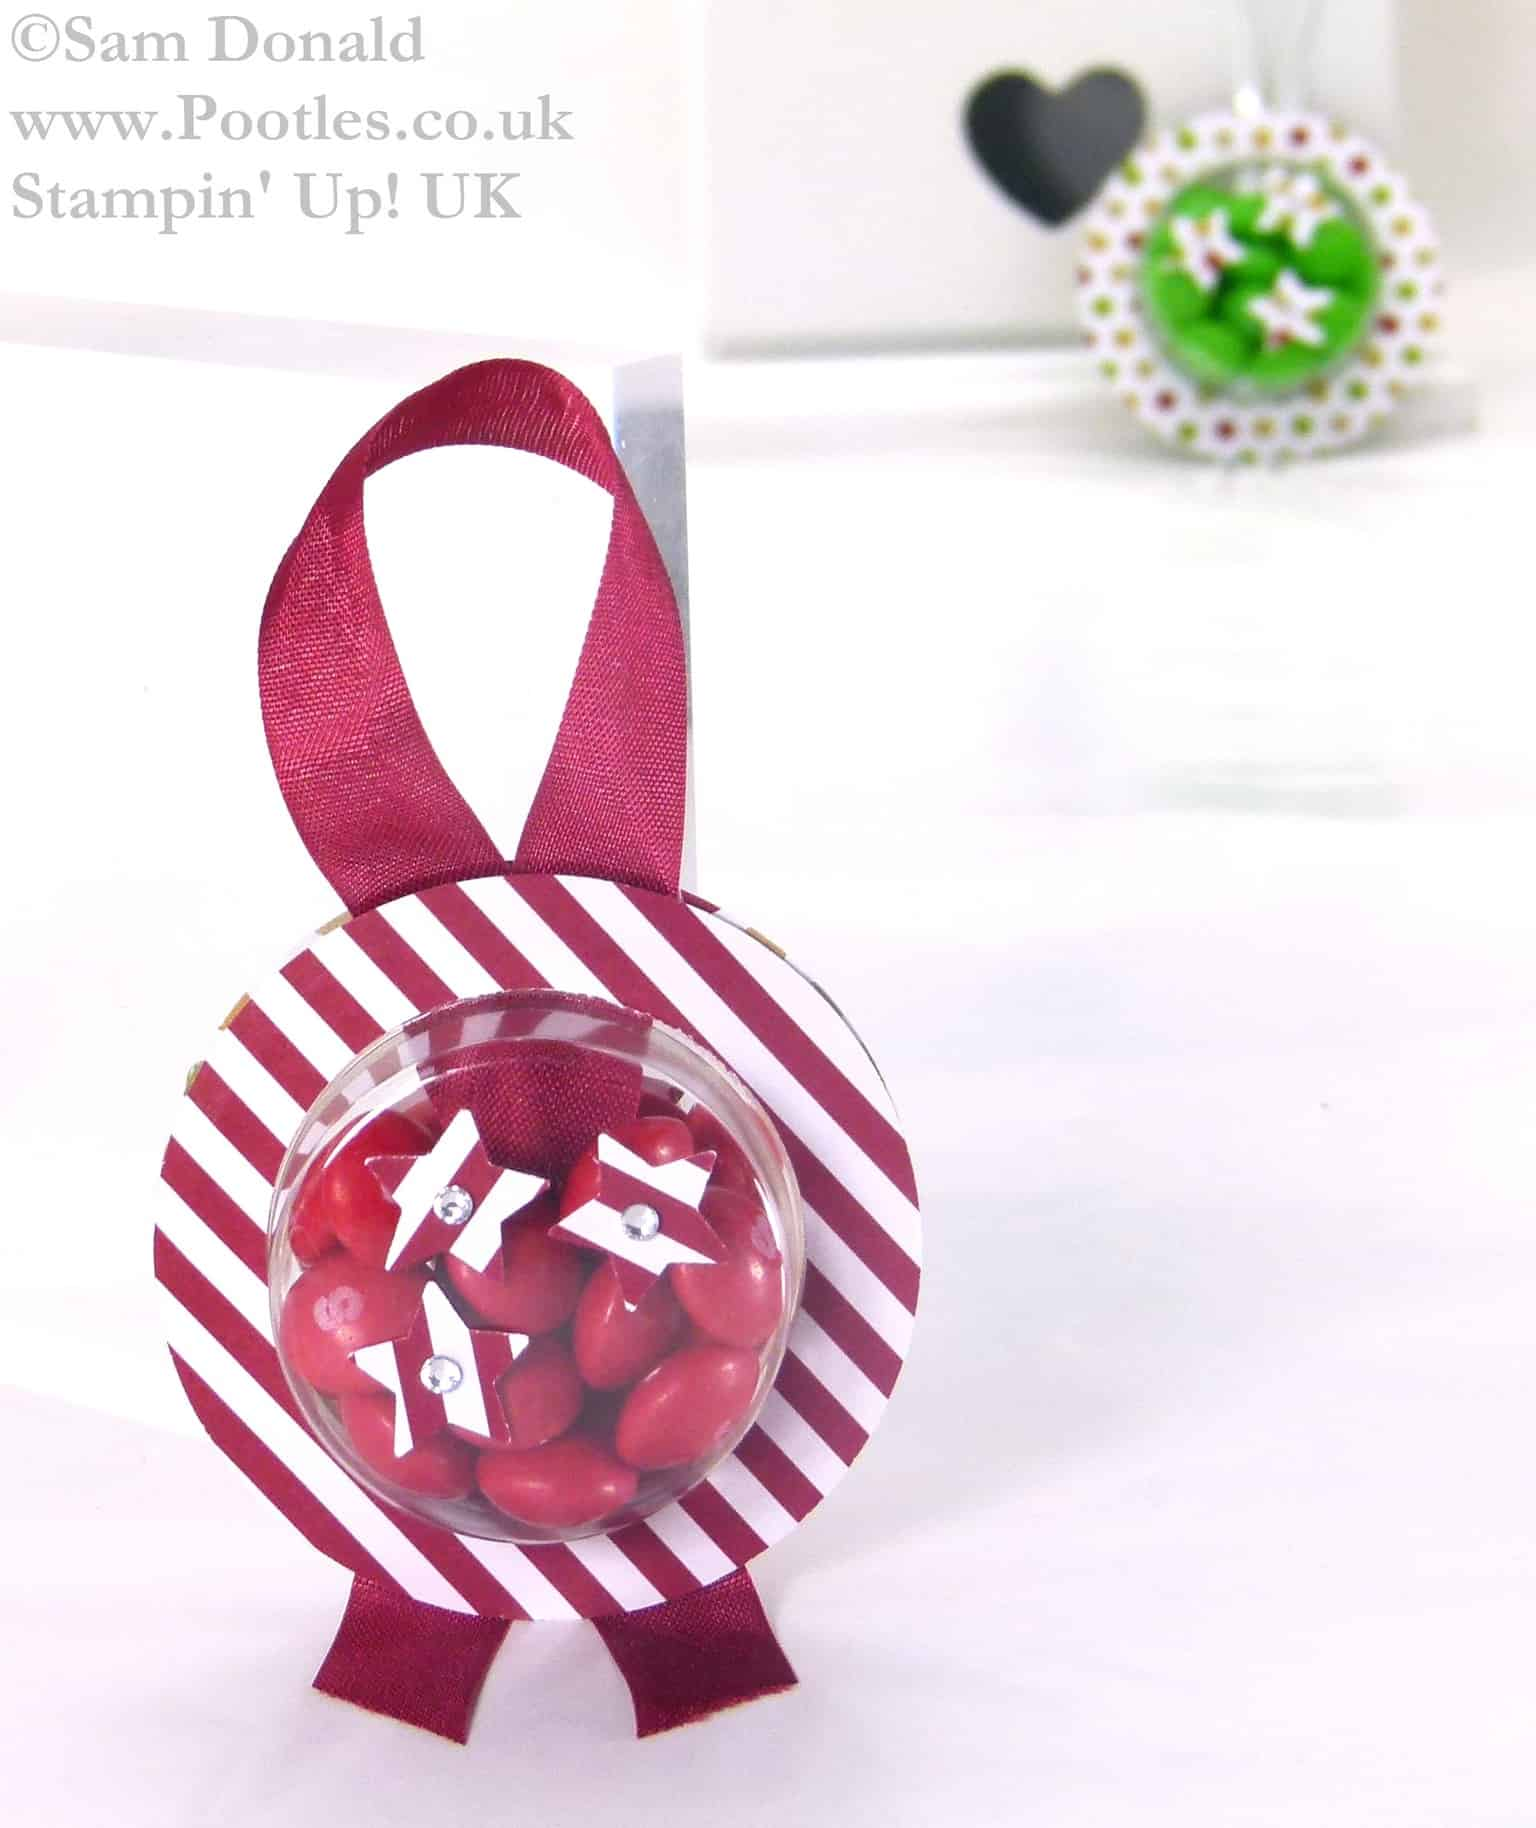 POOTLES Stampin Up UK ADVENT COUNTDOWN Sweetie Decorations Video Plus Bloopers..! 3